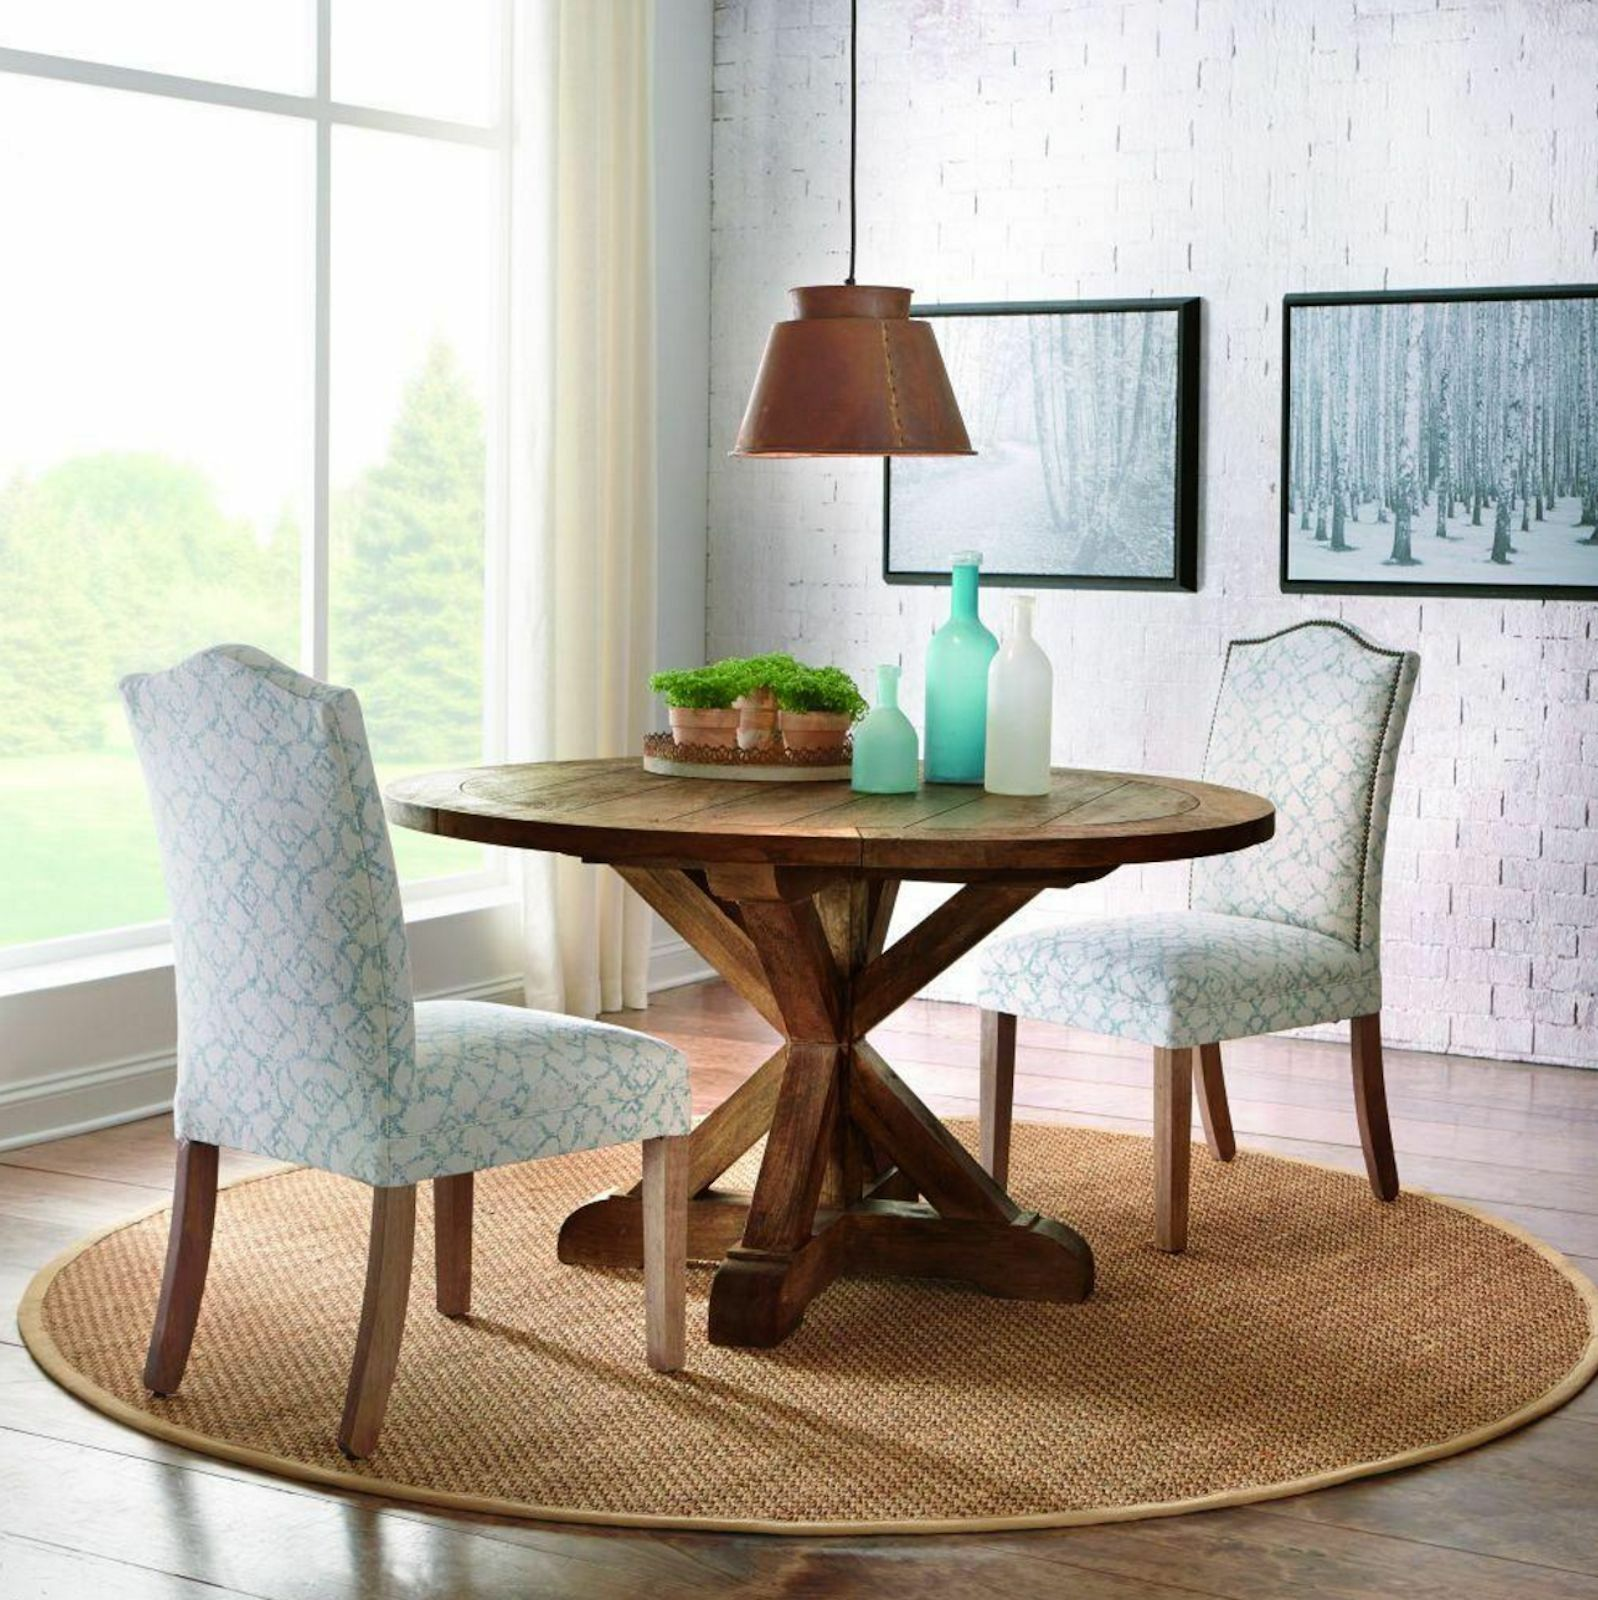 Cane Rustic Round Wood Dining Room Table Bark Kitchen Furnit